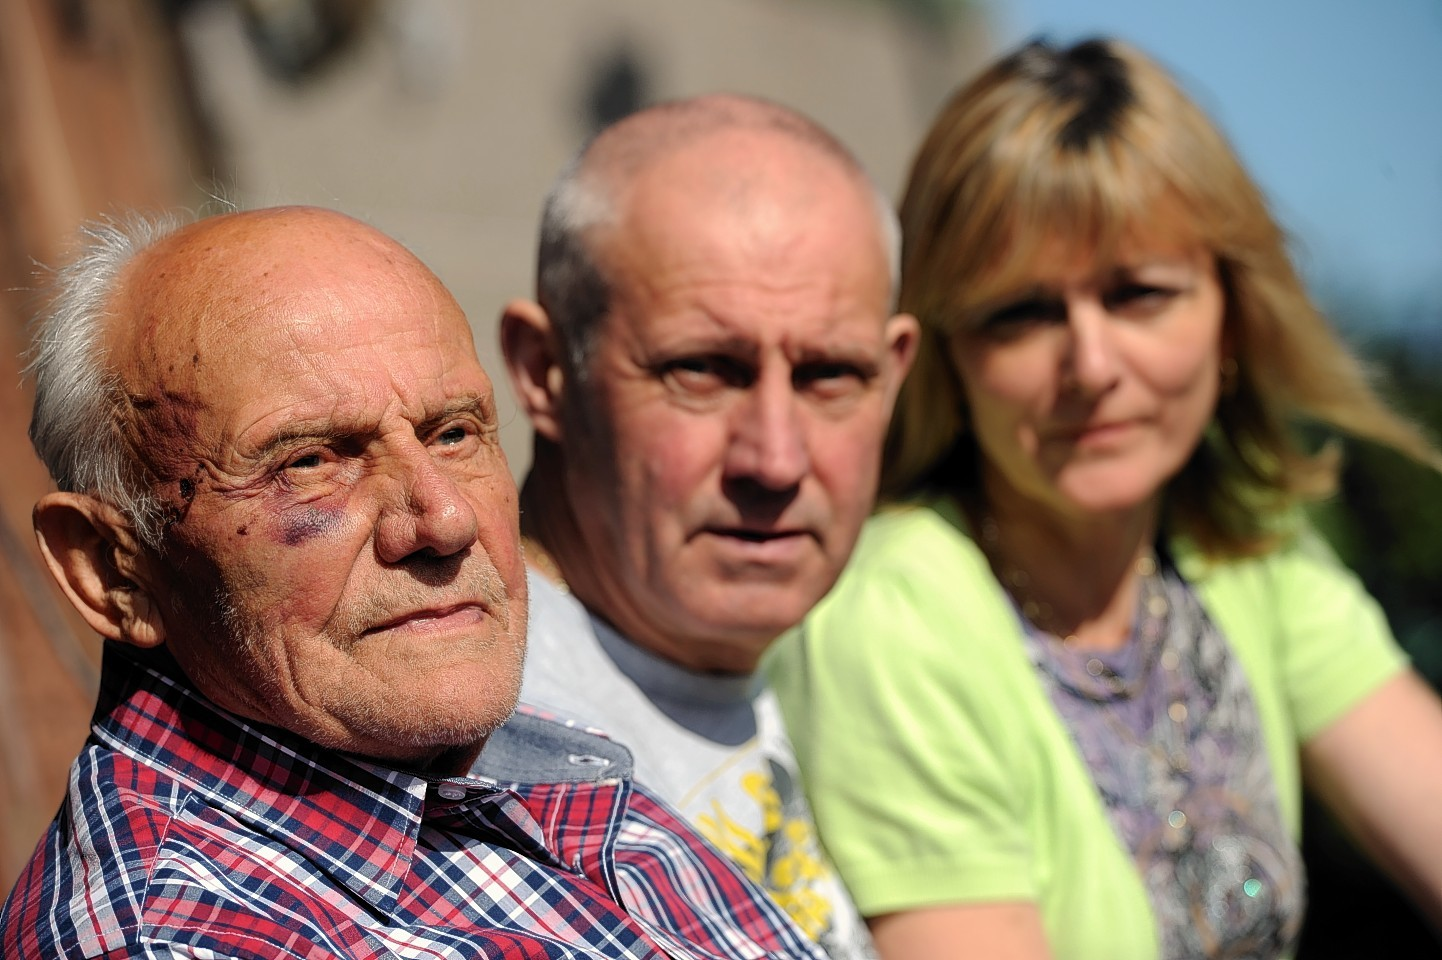 Gerhard Kolarczyk with his son Gary and daughter-in-law Alison after the 2012 accident near Rannoch